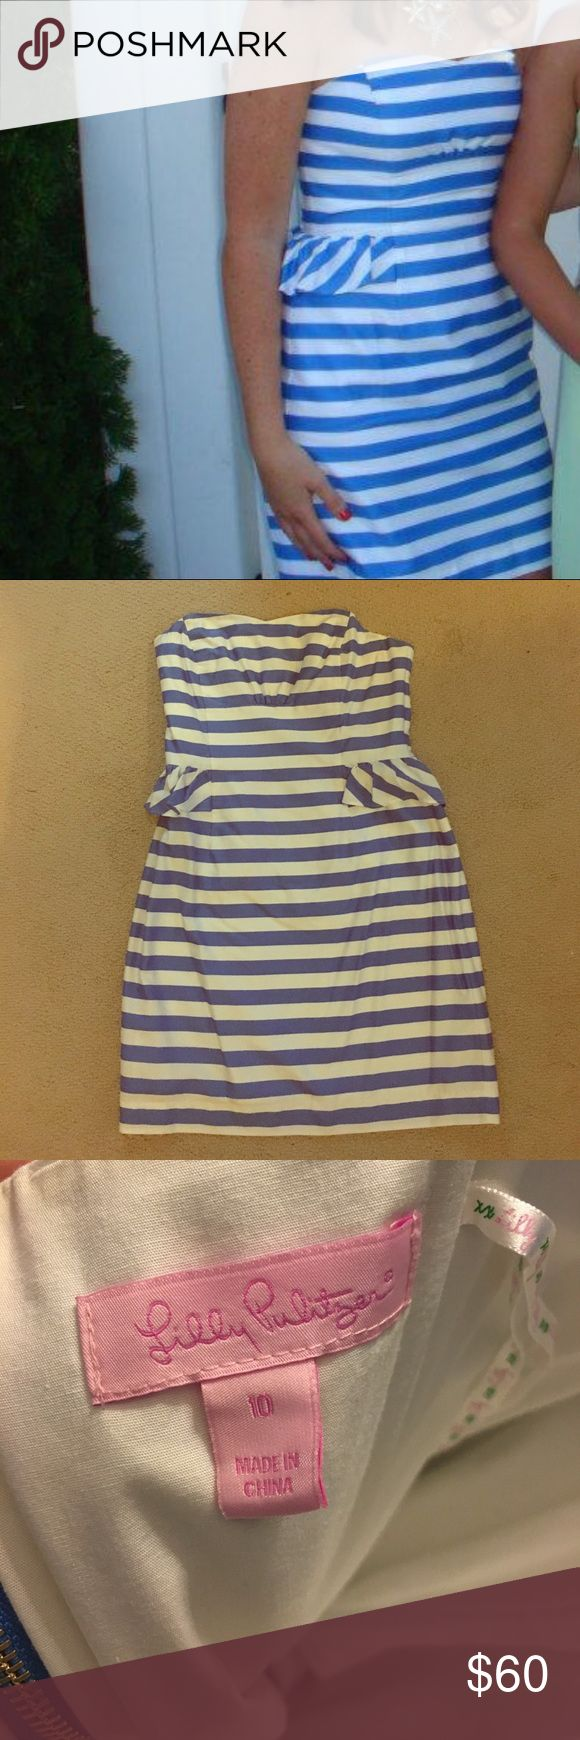 Lily Pulitzer Striped Cocktail Dress Adorable Lily Blue and White striped cocktail dress with sweetheart strapless neckline and ruffle detail at waist. Fully lined with built in boning. Perfect summer dress! True to size. size 10; freshly dry cleaned Lilly Pulitzer Dresses Mini